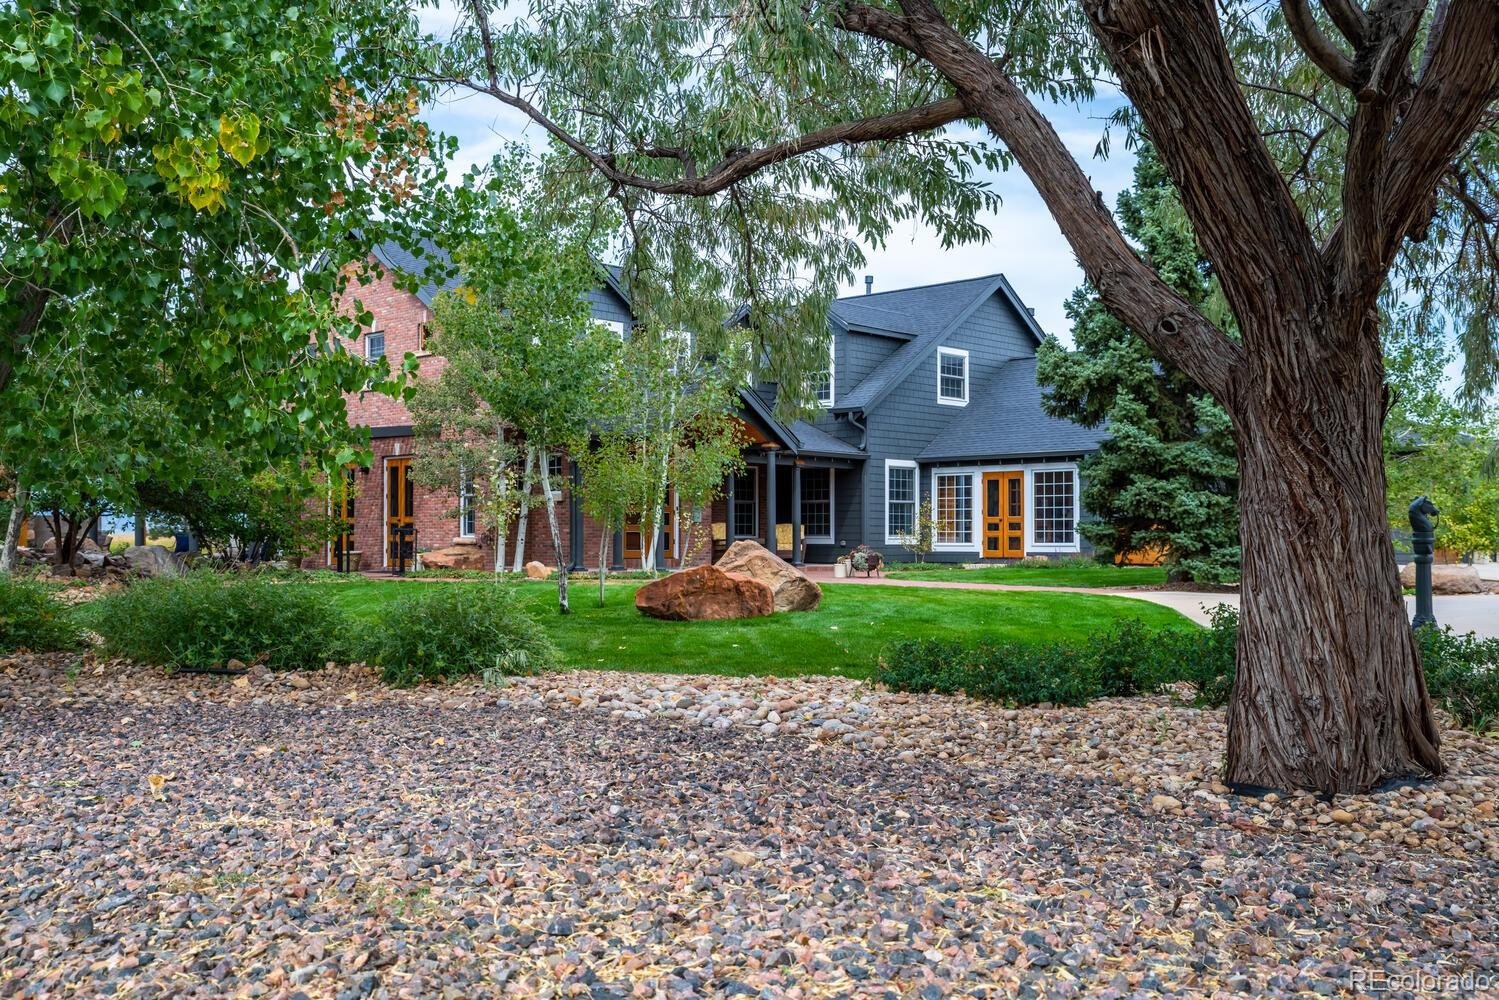 Mature Landscaping throughout the property